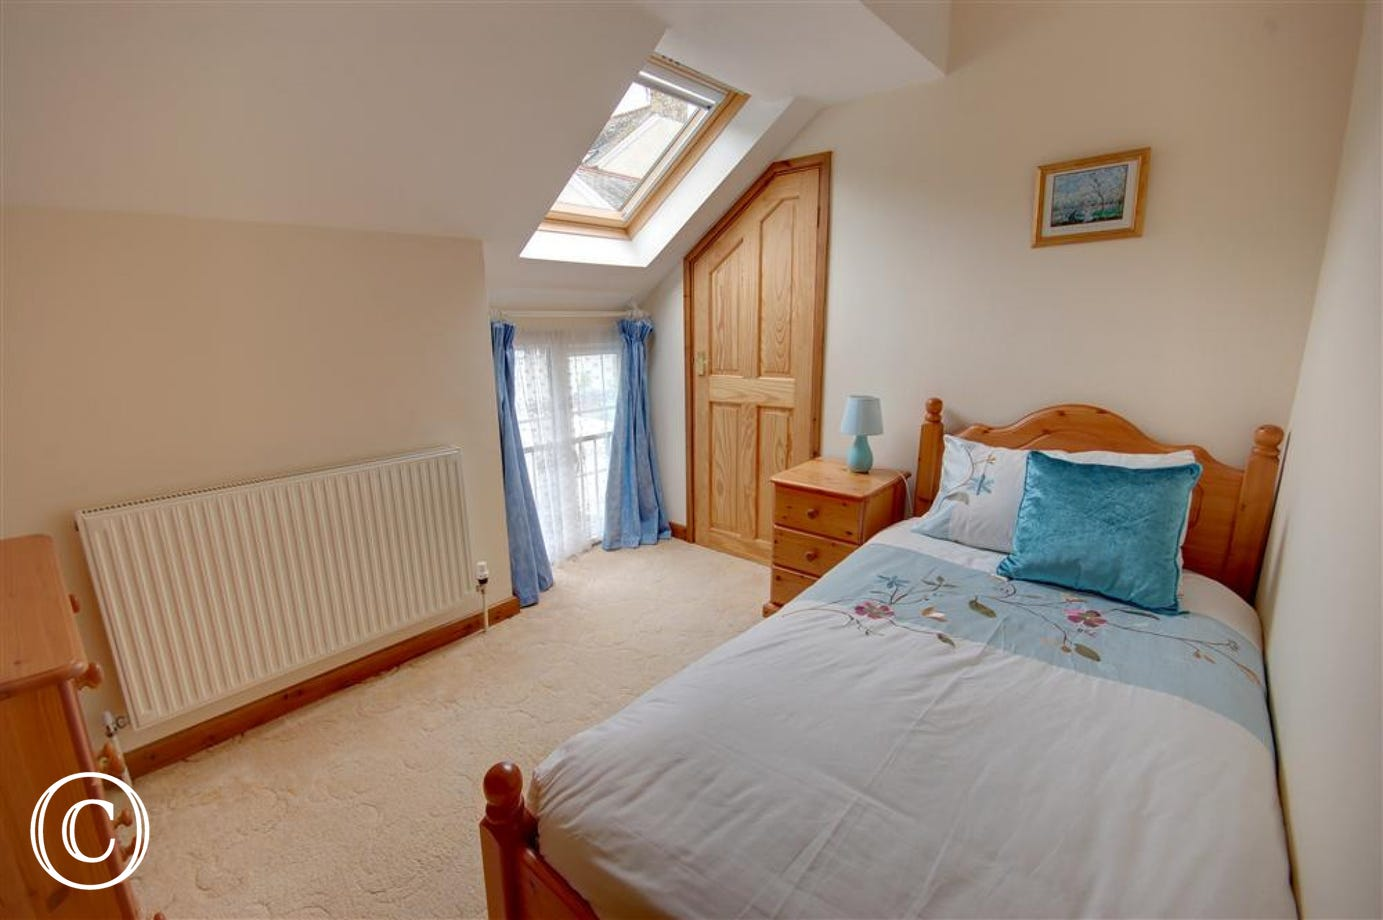 Spacious single bedded room with velux window for added light